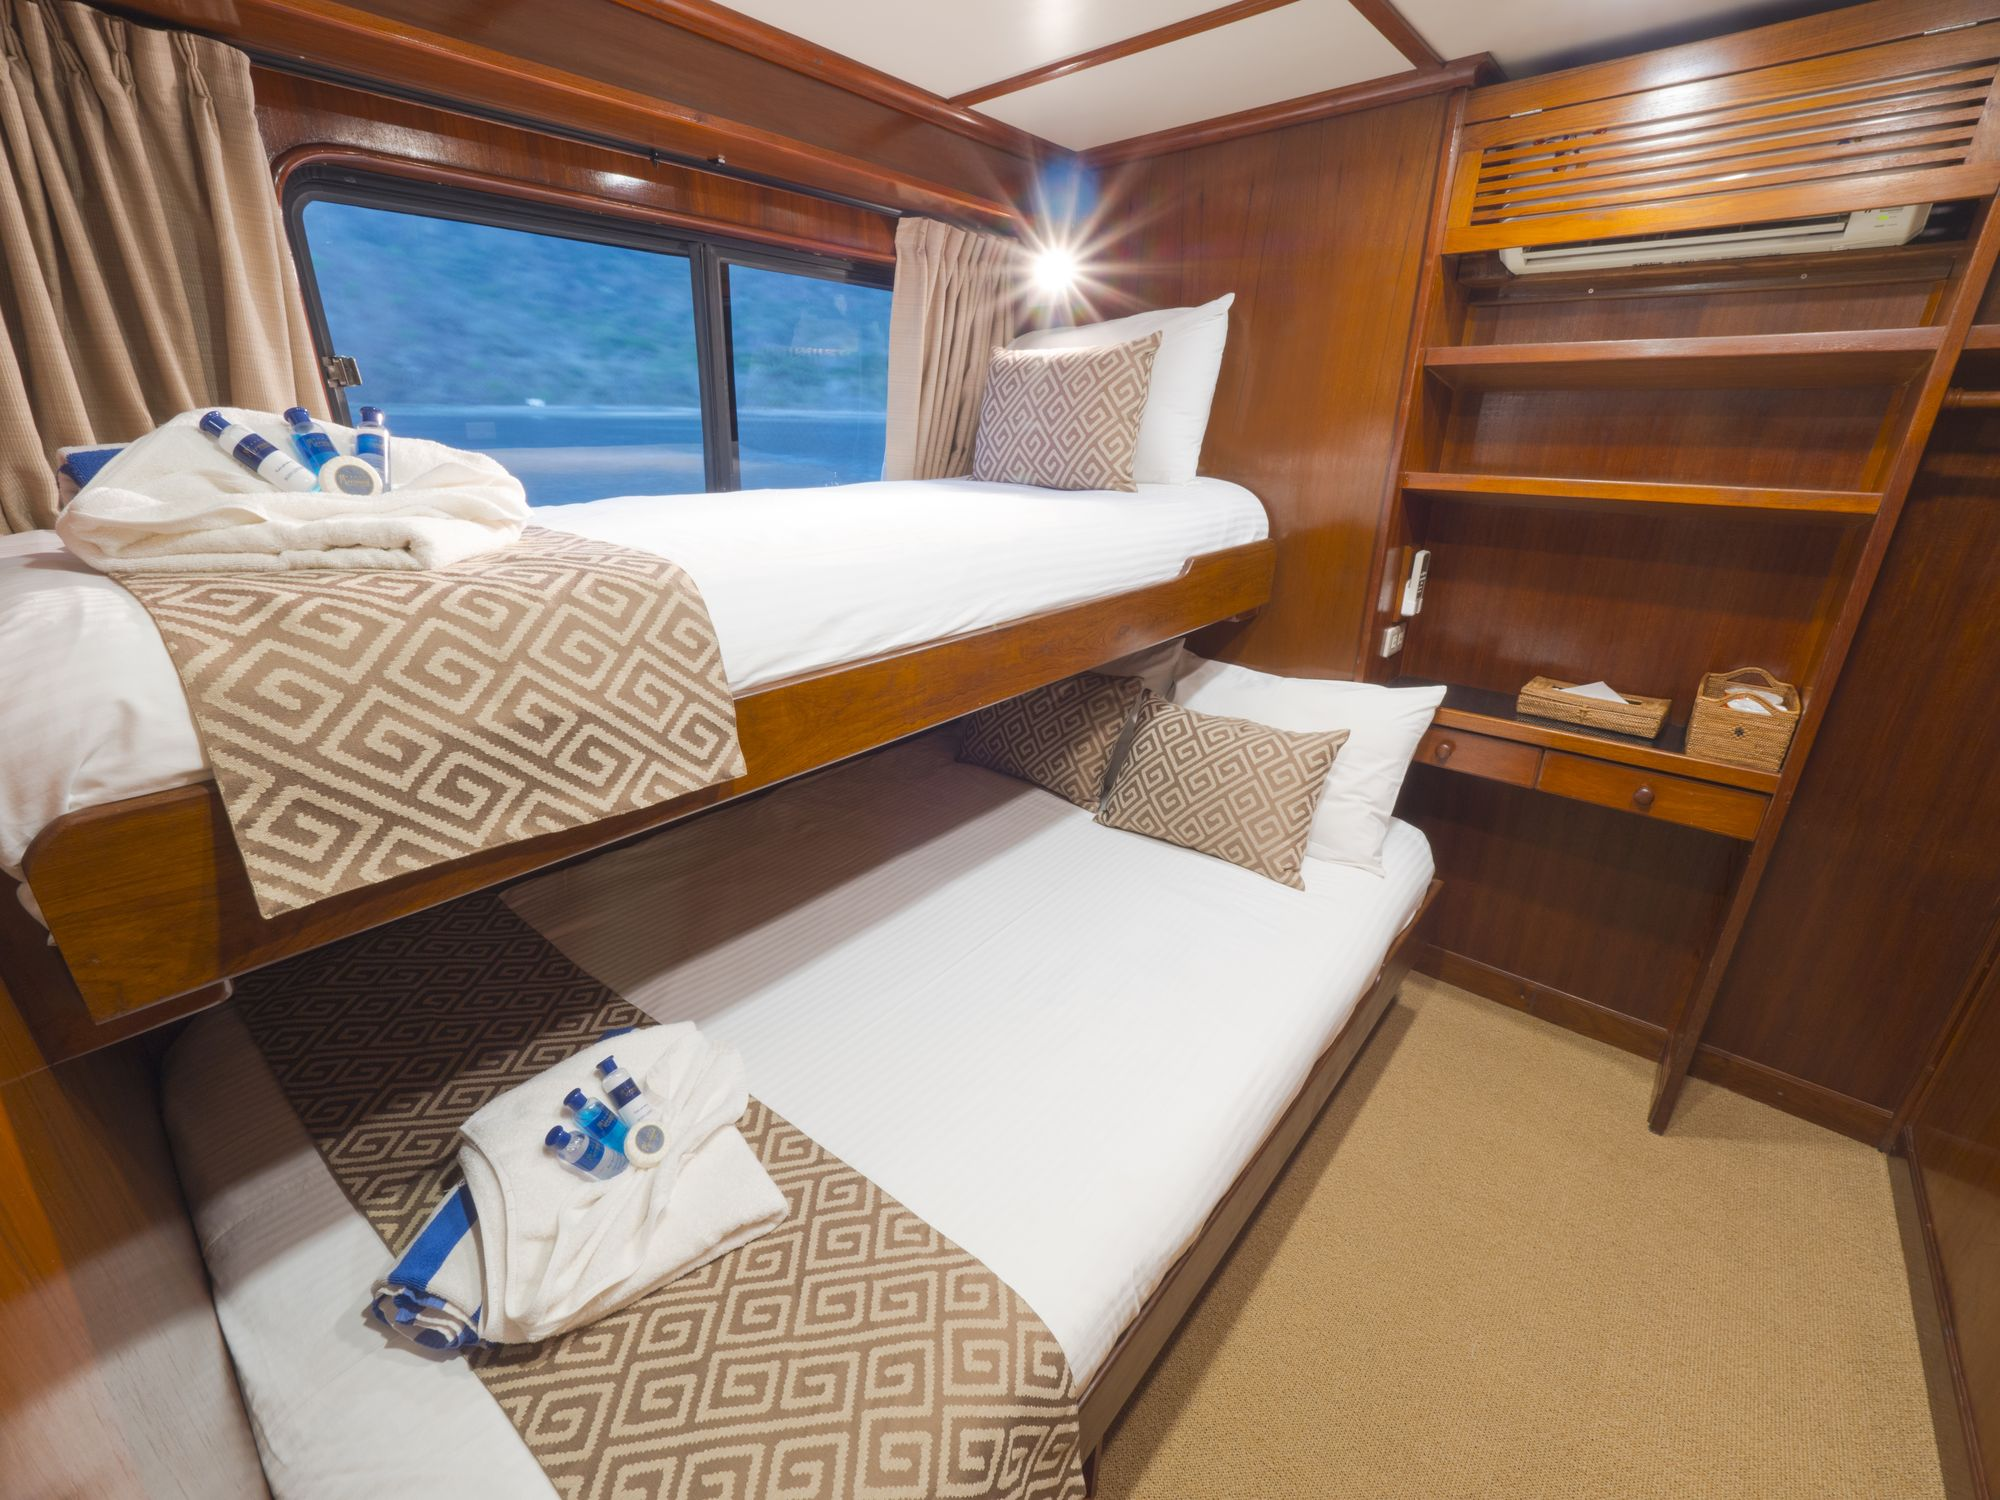 Mermaid II's deluxe twin cabin